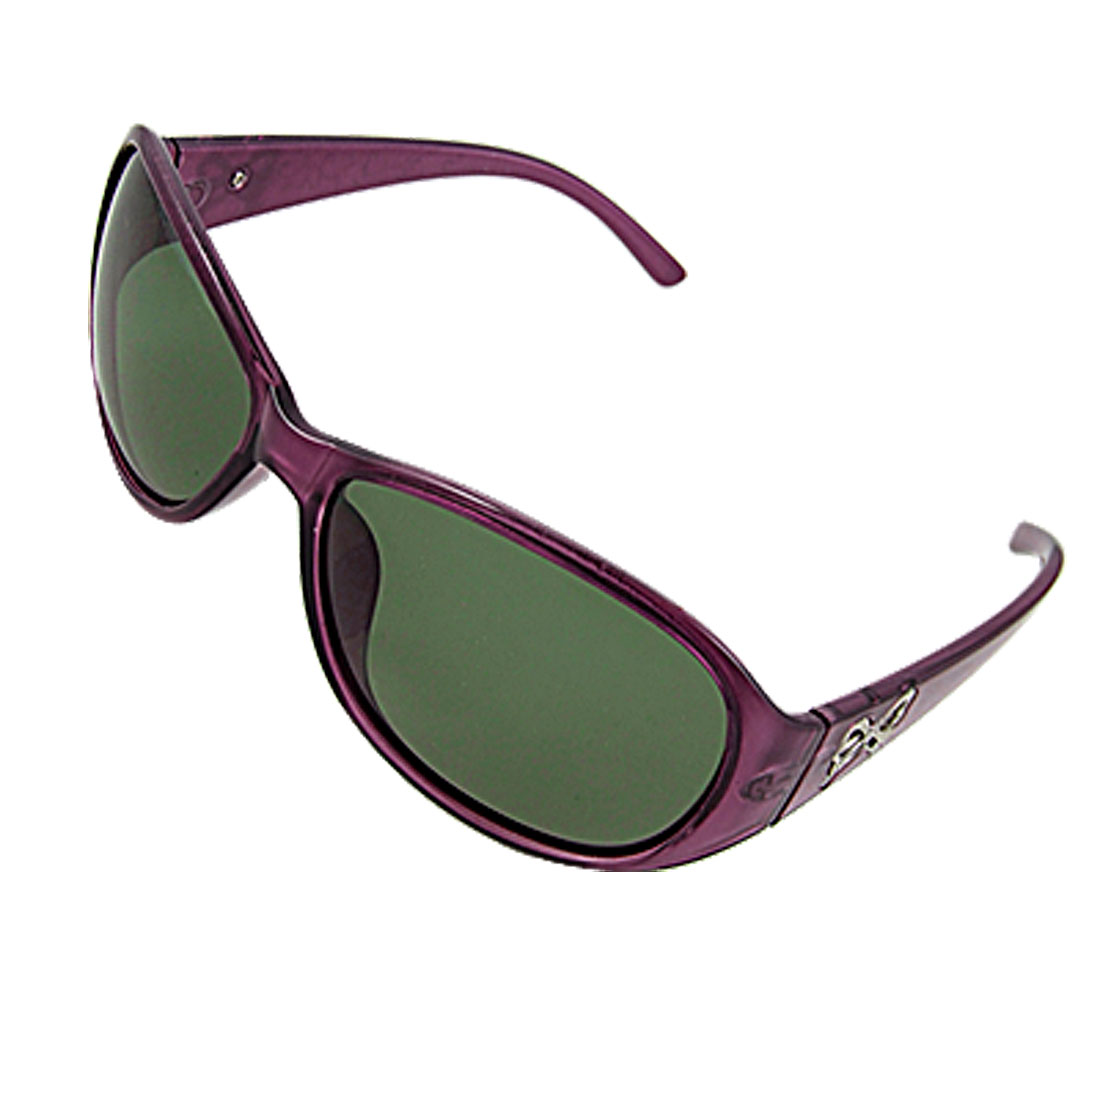 Ladies Dark Magenta Plastic Bowtie Arms Polarized Sunglasses